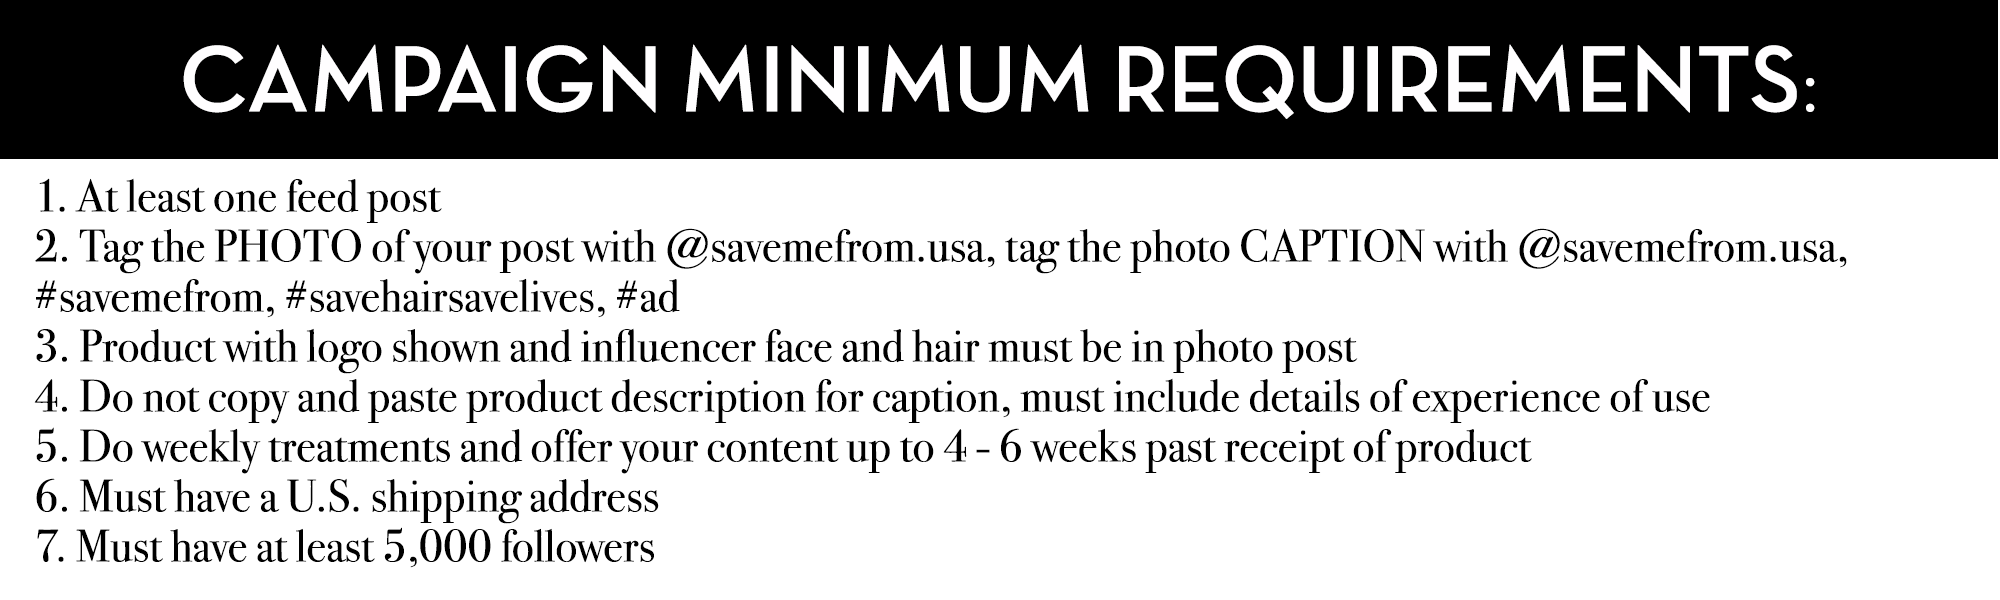 CAMPAIGN MINIMUM REQUIREMENTS:  1. At least one feed post 2. Tag the PHOTO of your post with @savemefrom.usa, tag the photo CAPTION with @savemefrom.usa, #savemefrom, #savehairsavelives, #ad 3. Product with logo shown and influencer face and hair must be in photo post 4. Do not copy and paste product description for caption, must include details of experience of use 5. Do weekly treatments and offer your content up to 4 - 6 weeks past receipt of product 6. Must have a U.S. shipping address 7. Must have at least 5,000 followers